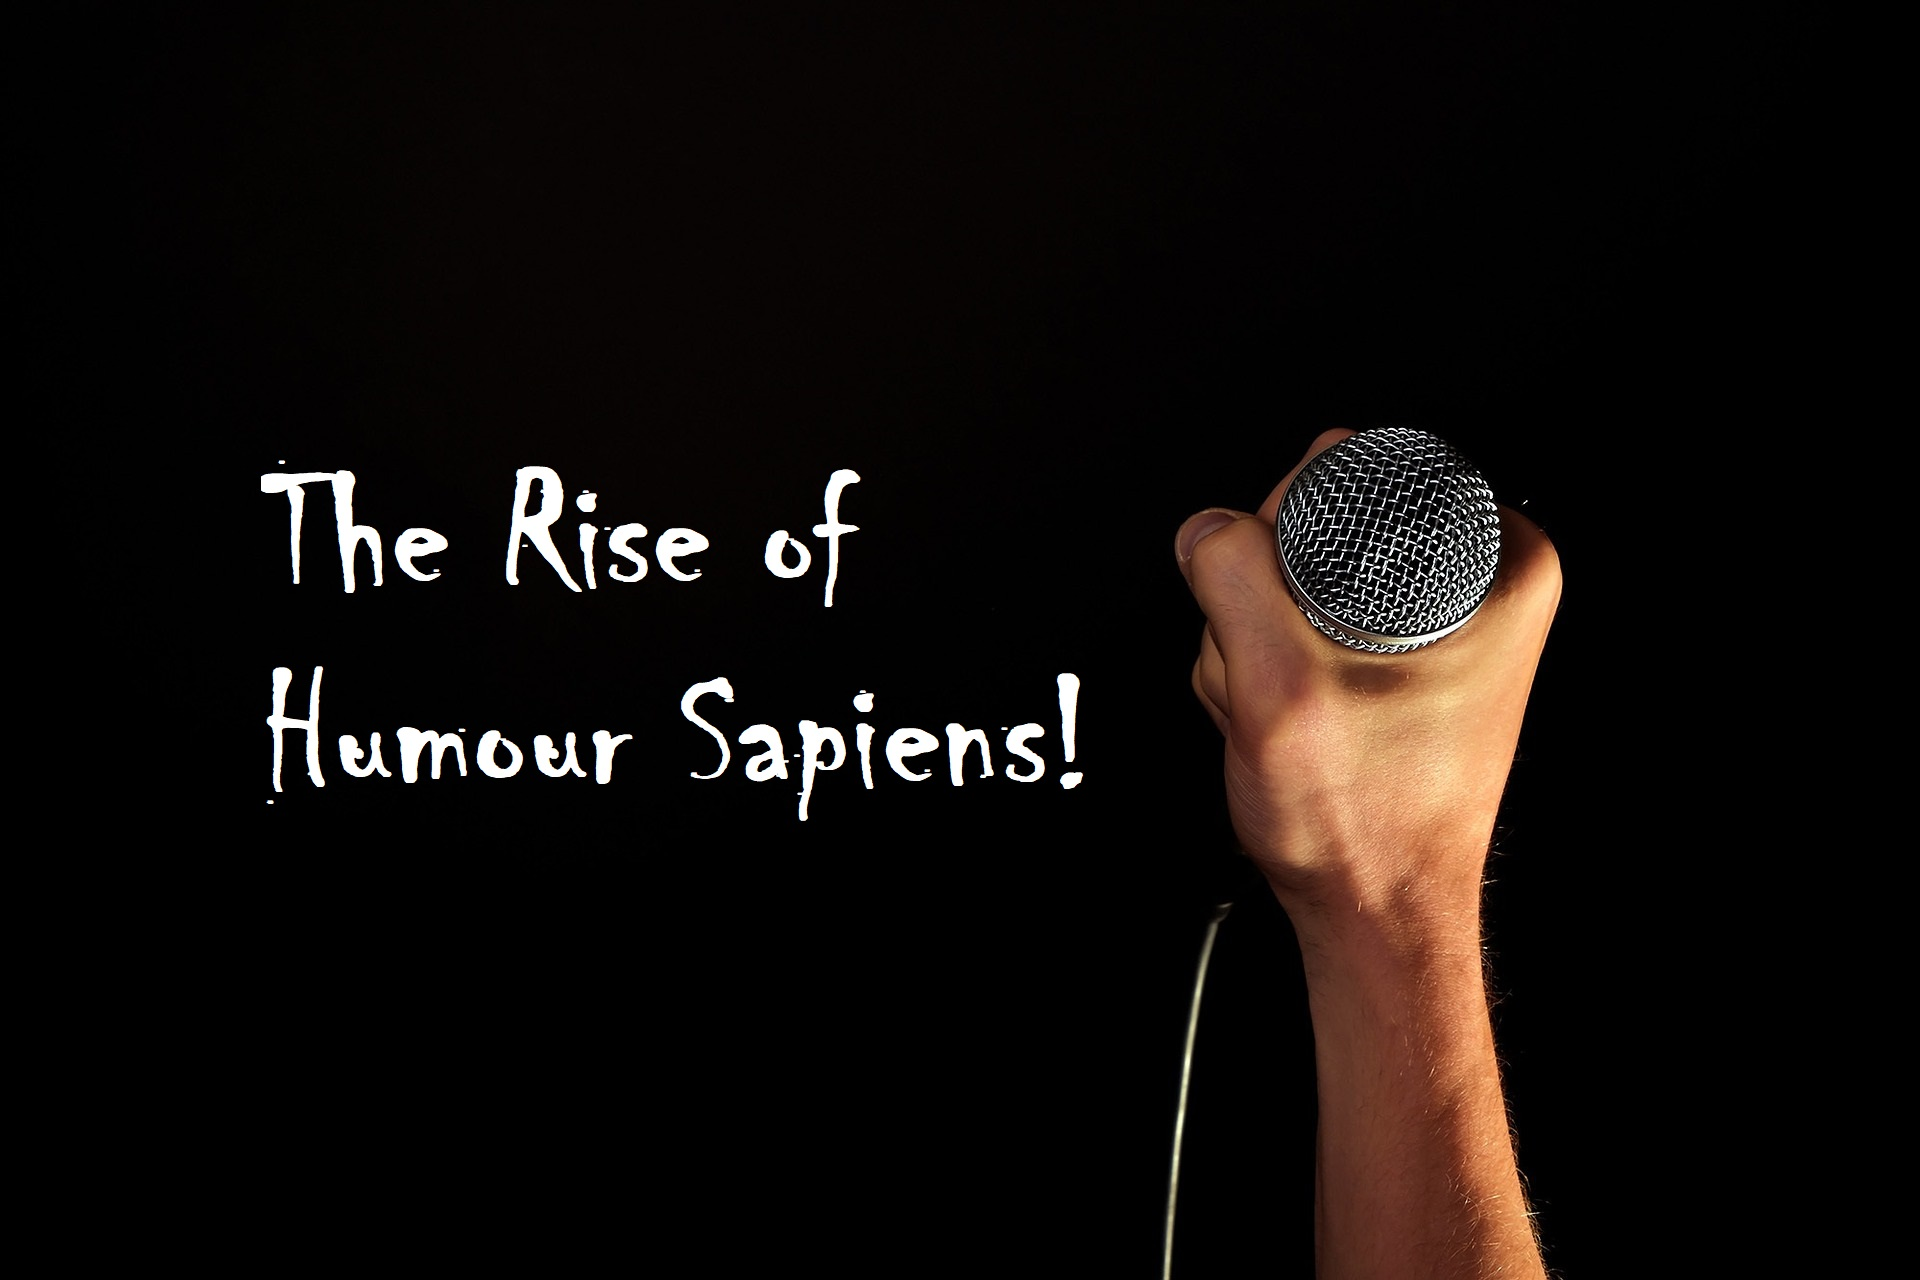 the rise of humour sapiens